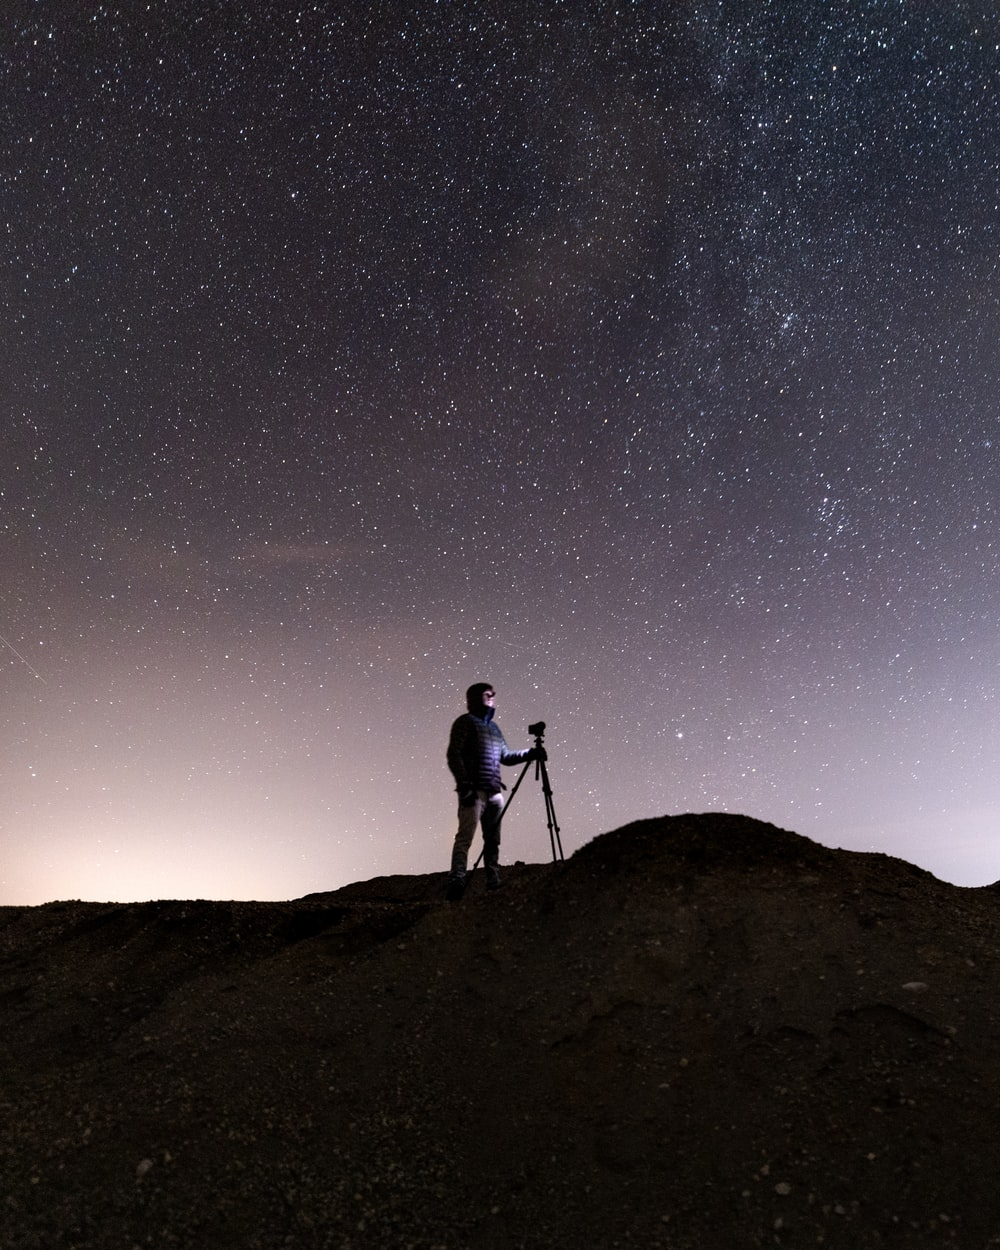 silhouette of man and woman standing on hill under starry night